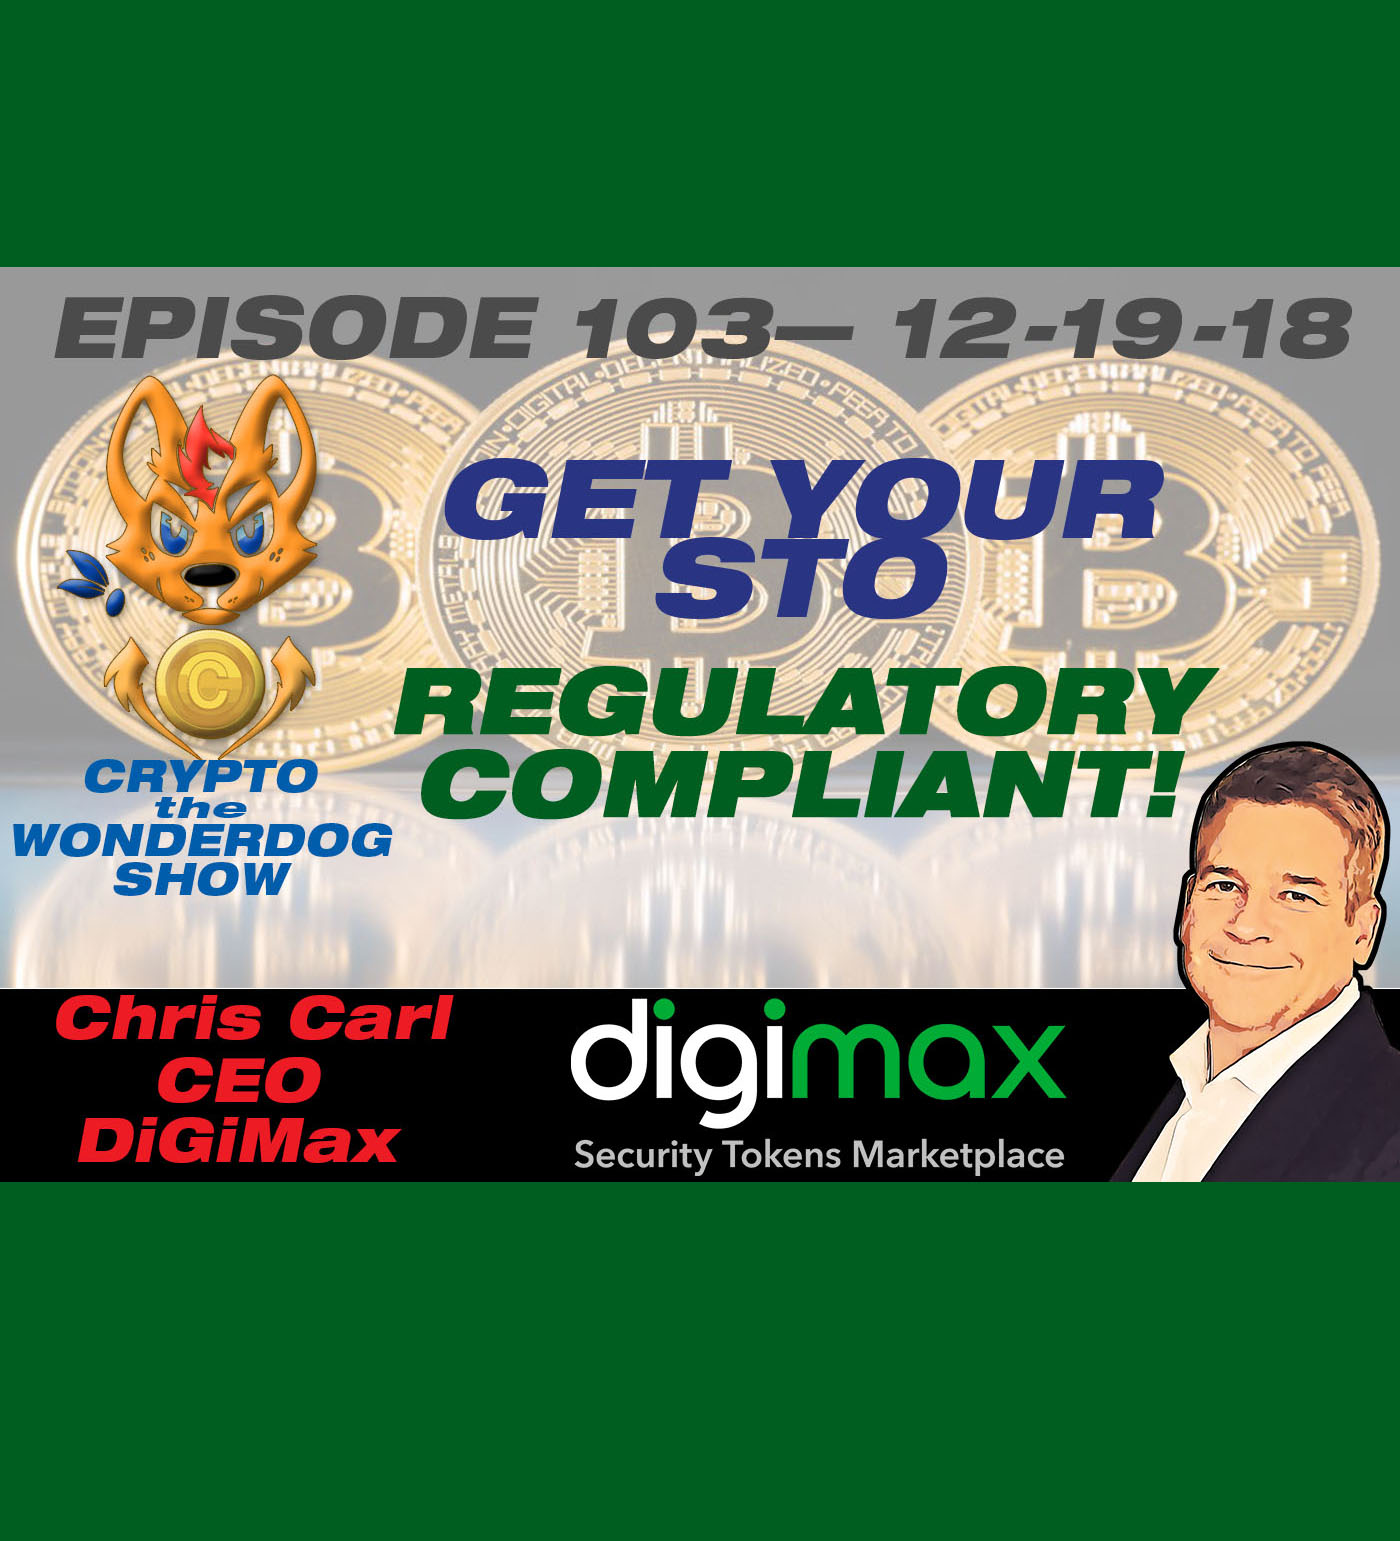 How To Get Your STO Regulatory Compliant - Digi Max & AirDrops with Flyerdrop The regulatory-compliant platform for high-quality ICOs and qualified investors - DigiMax